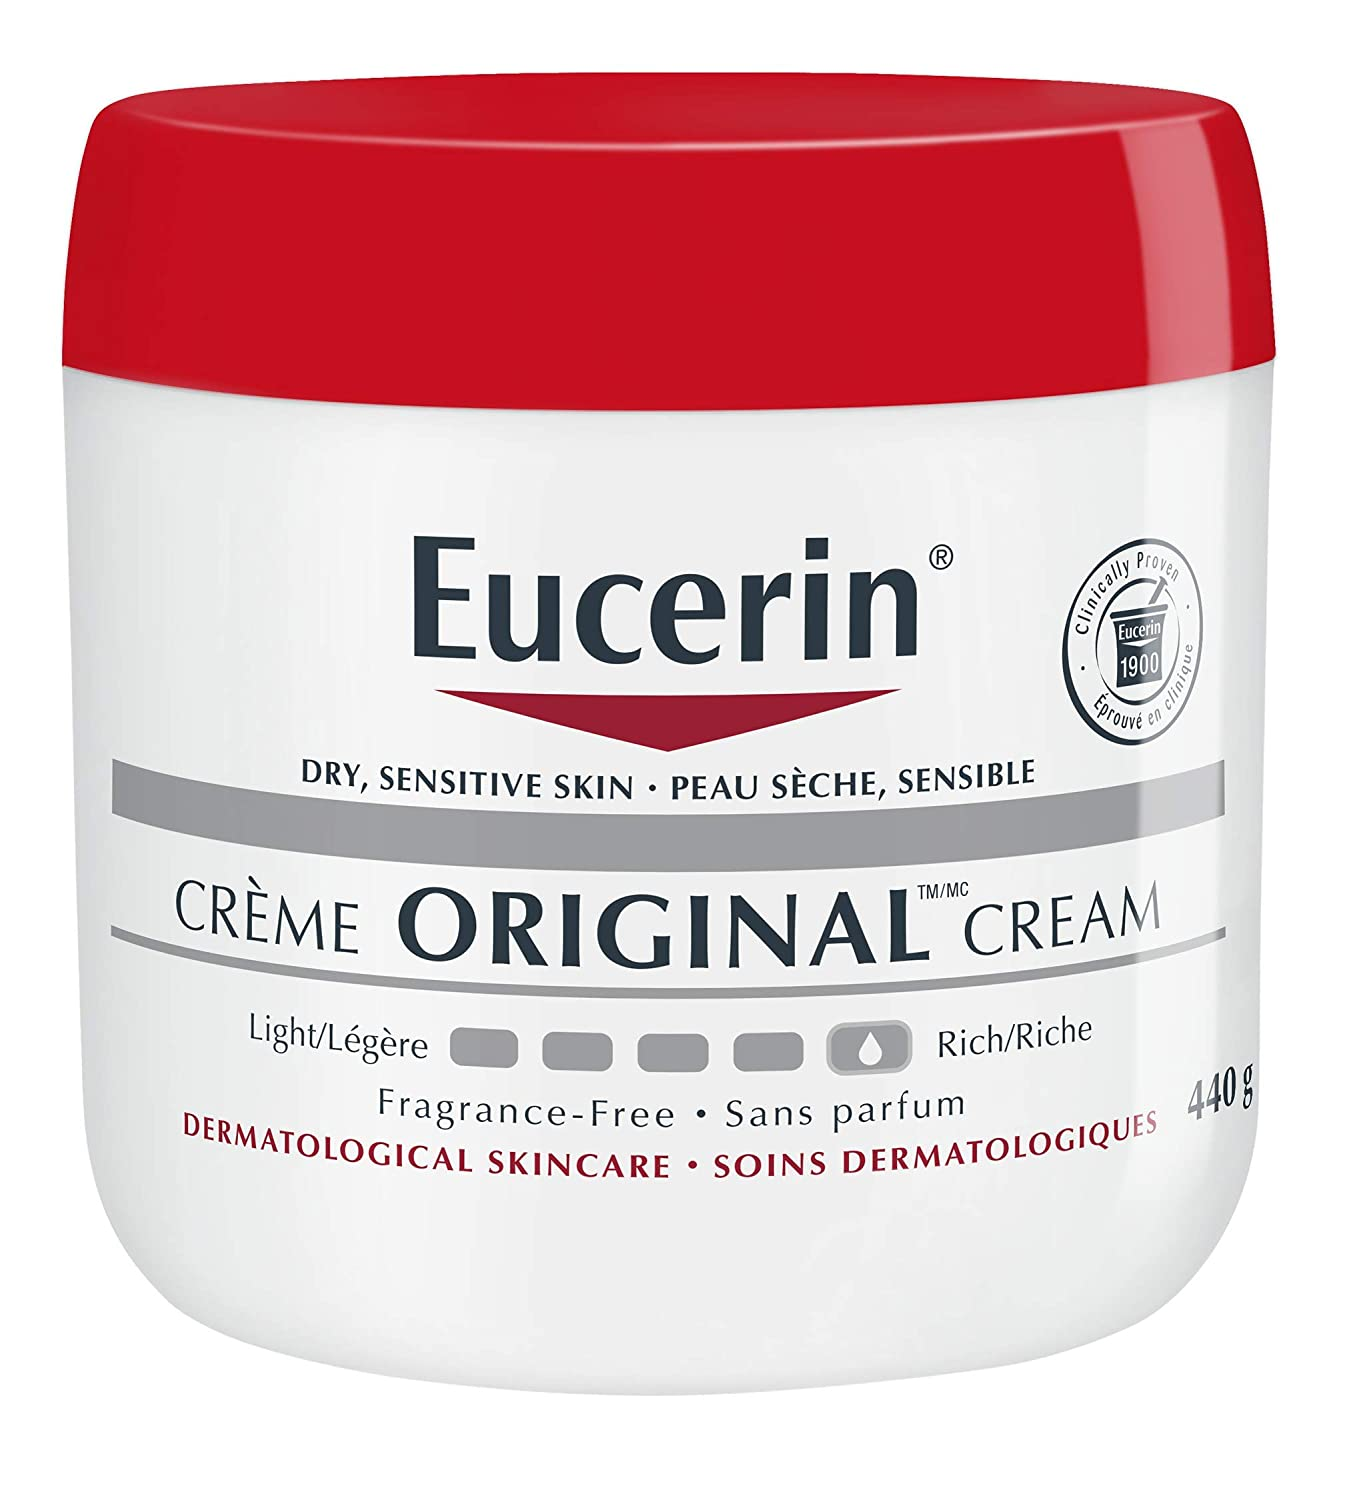 Eucerin Original Healing Cream - Fragrance Free, Rich Lotion for Extremely Dry Skin - 16 oz. Jar (Pack of 2)